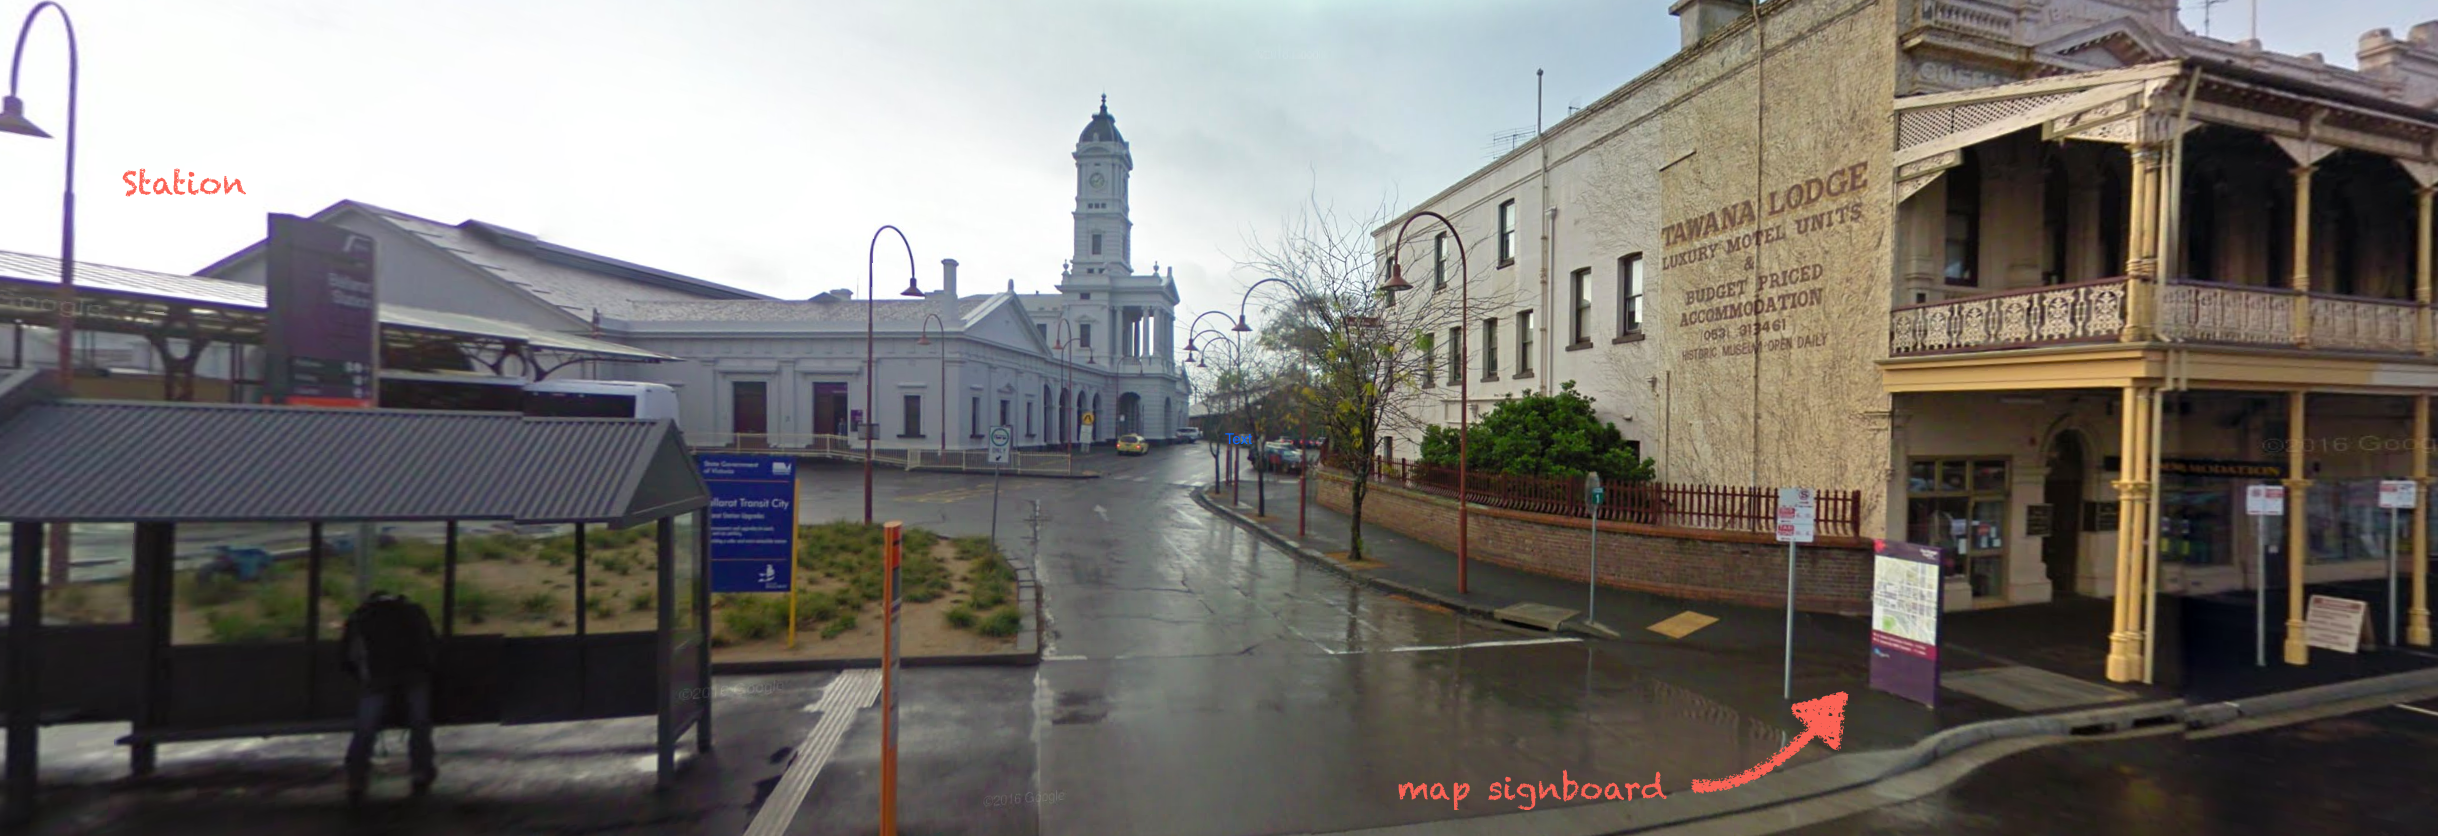 Google Street View of Ballarat Station with added notes